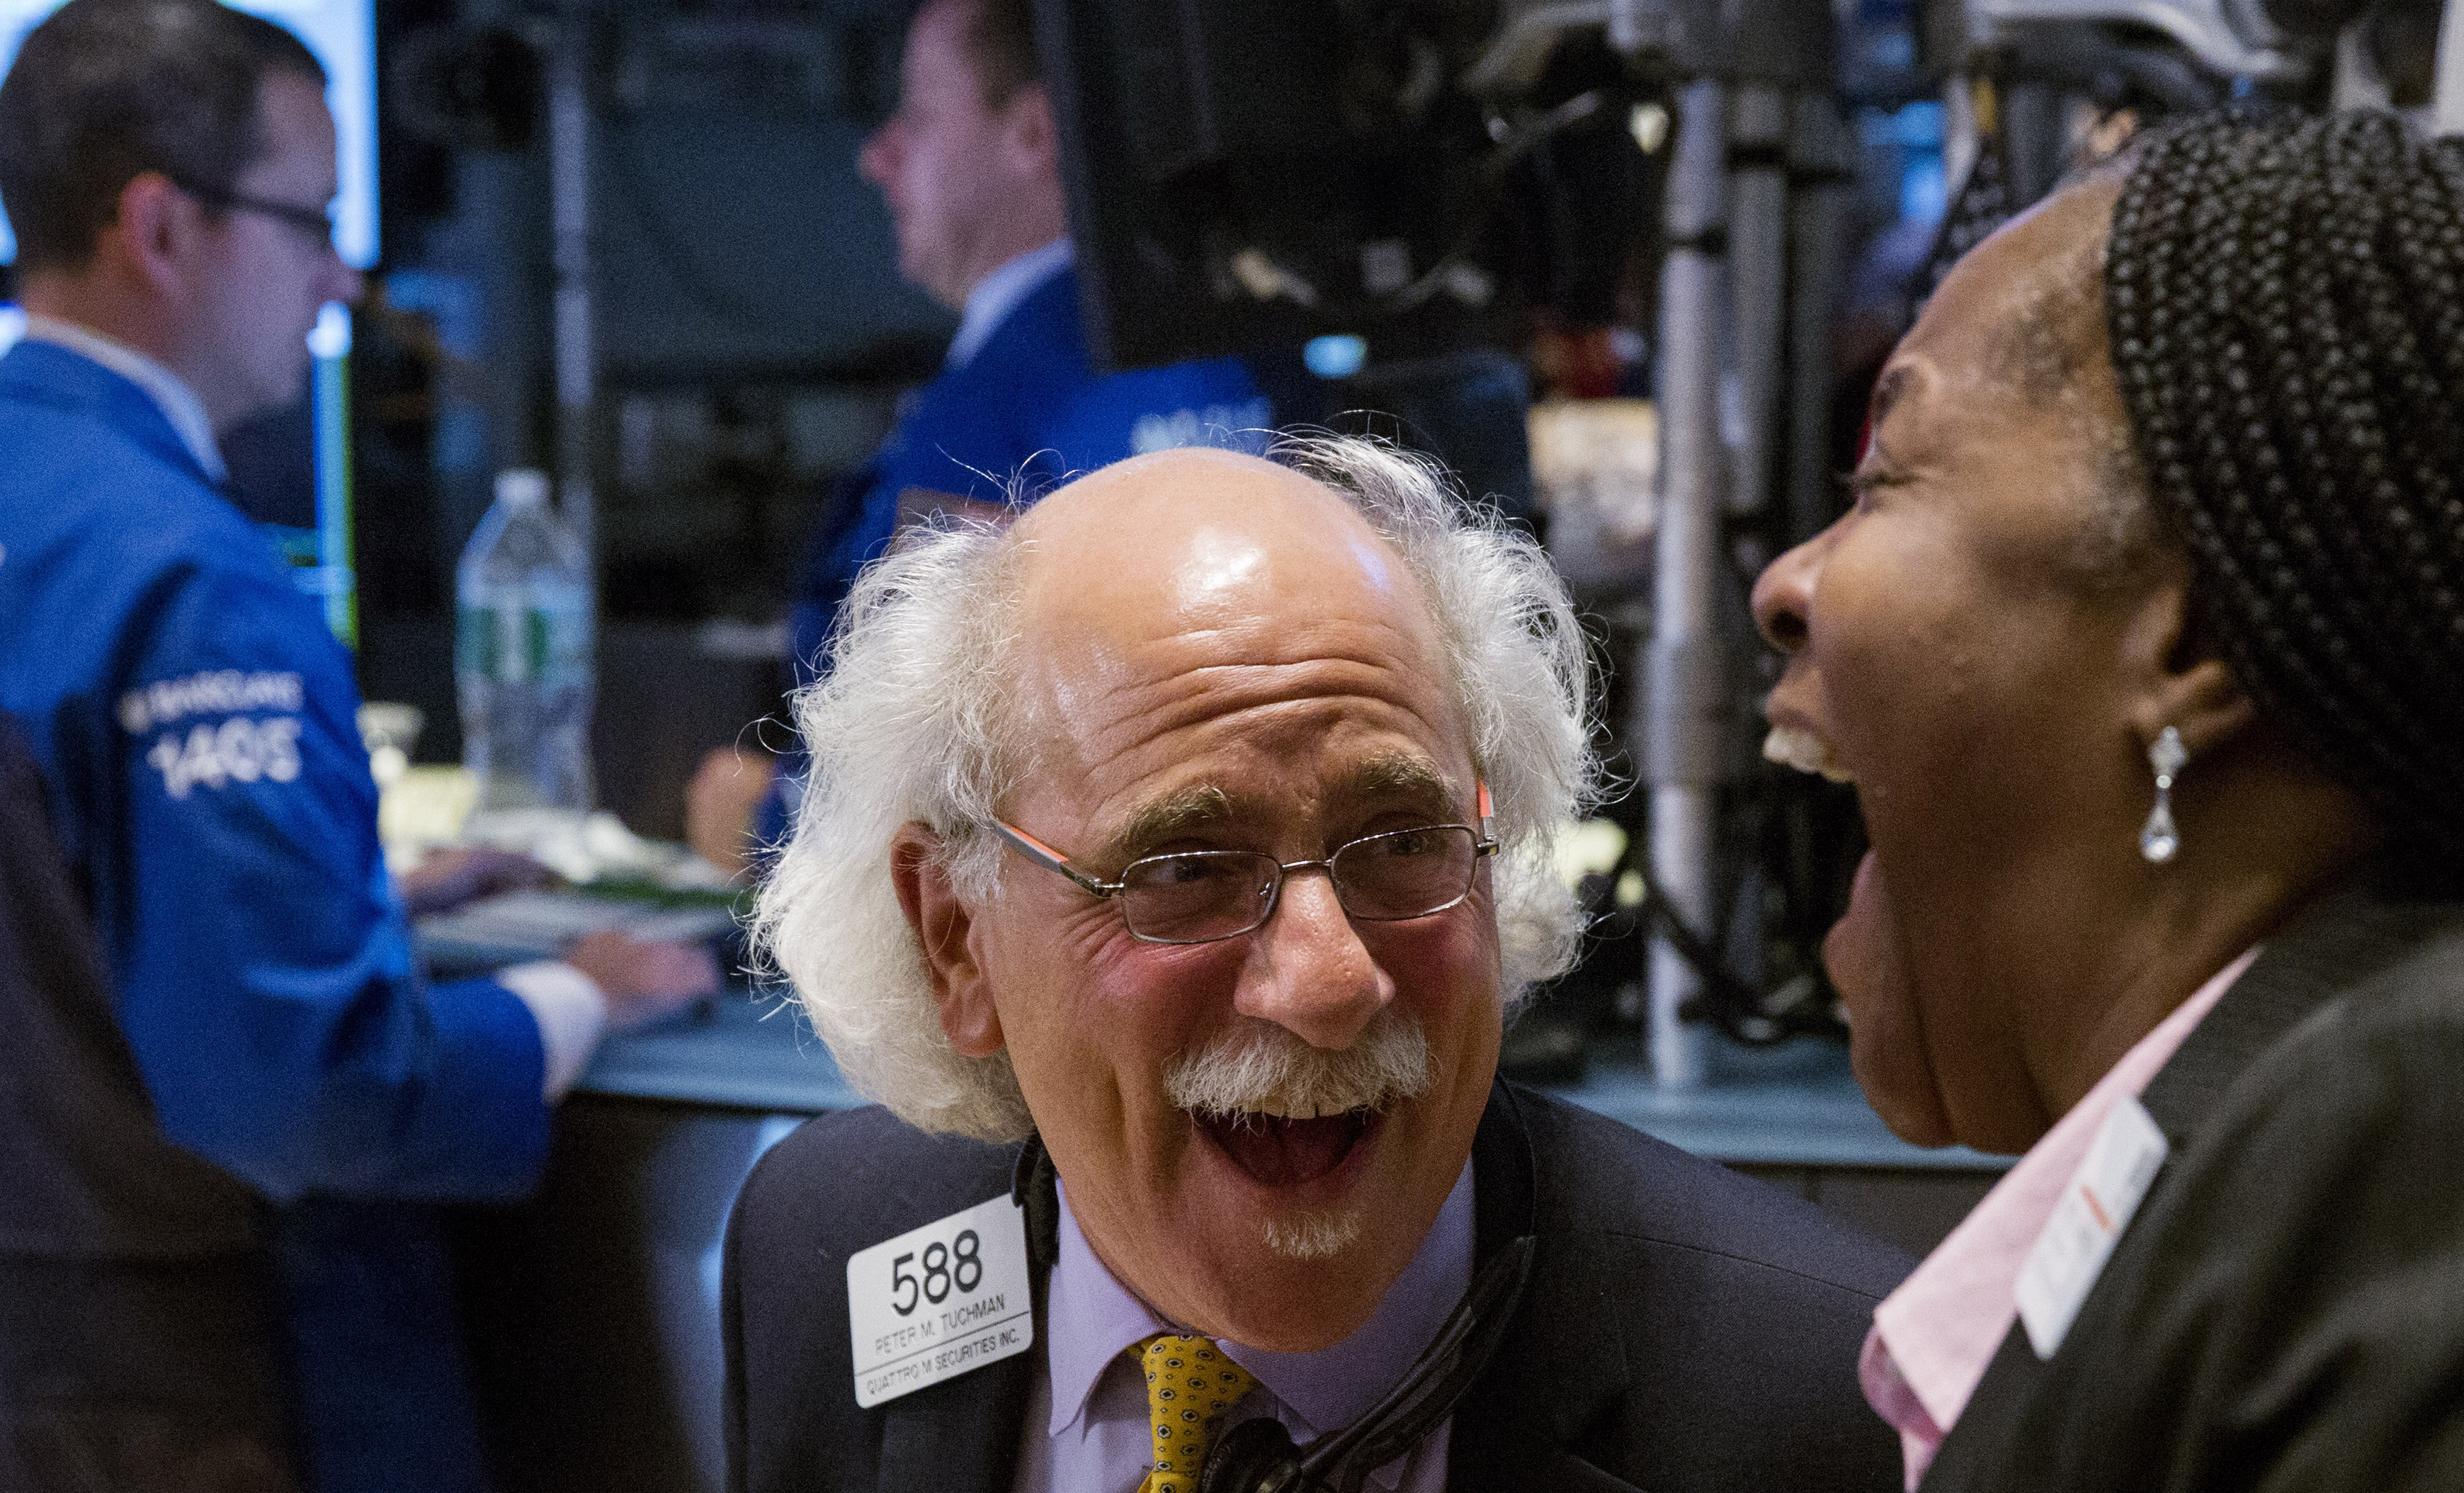 Traders laugh as they work on the floor of the New York Stock Exchange as the market closes in New York October 17, 2014.